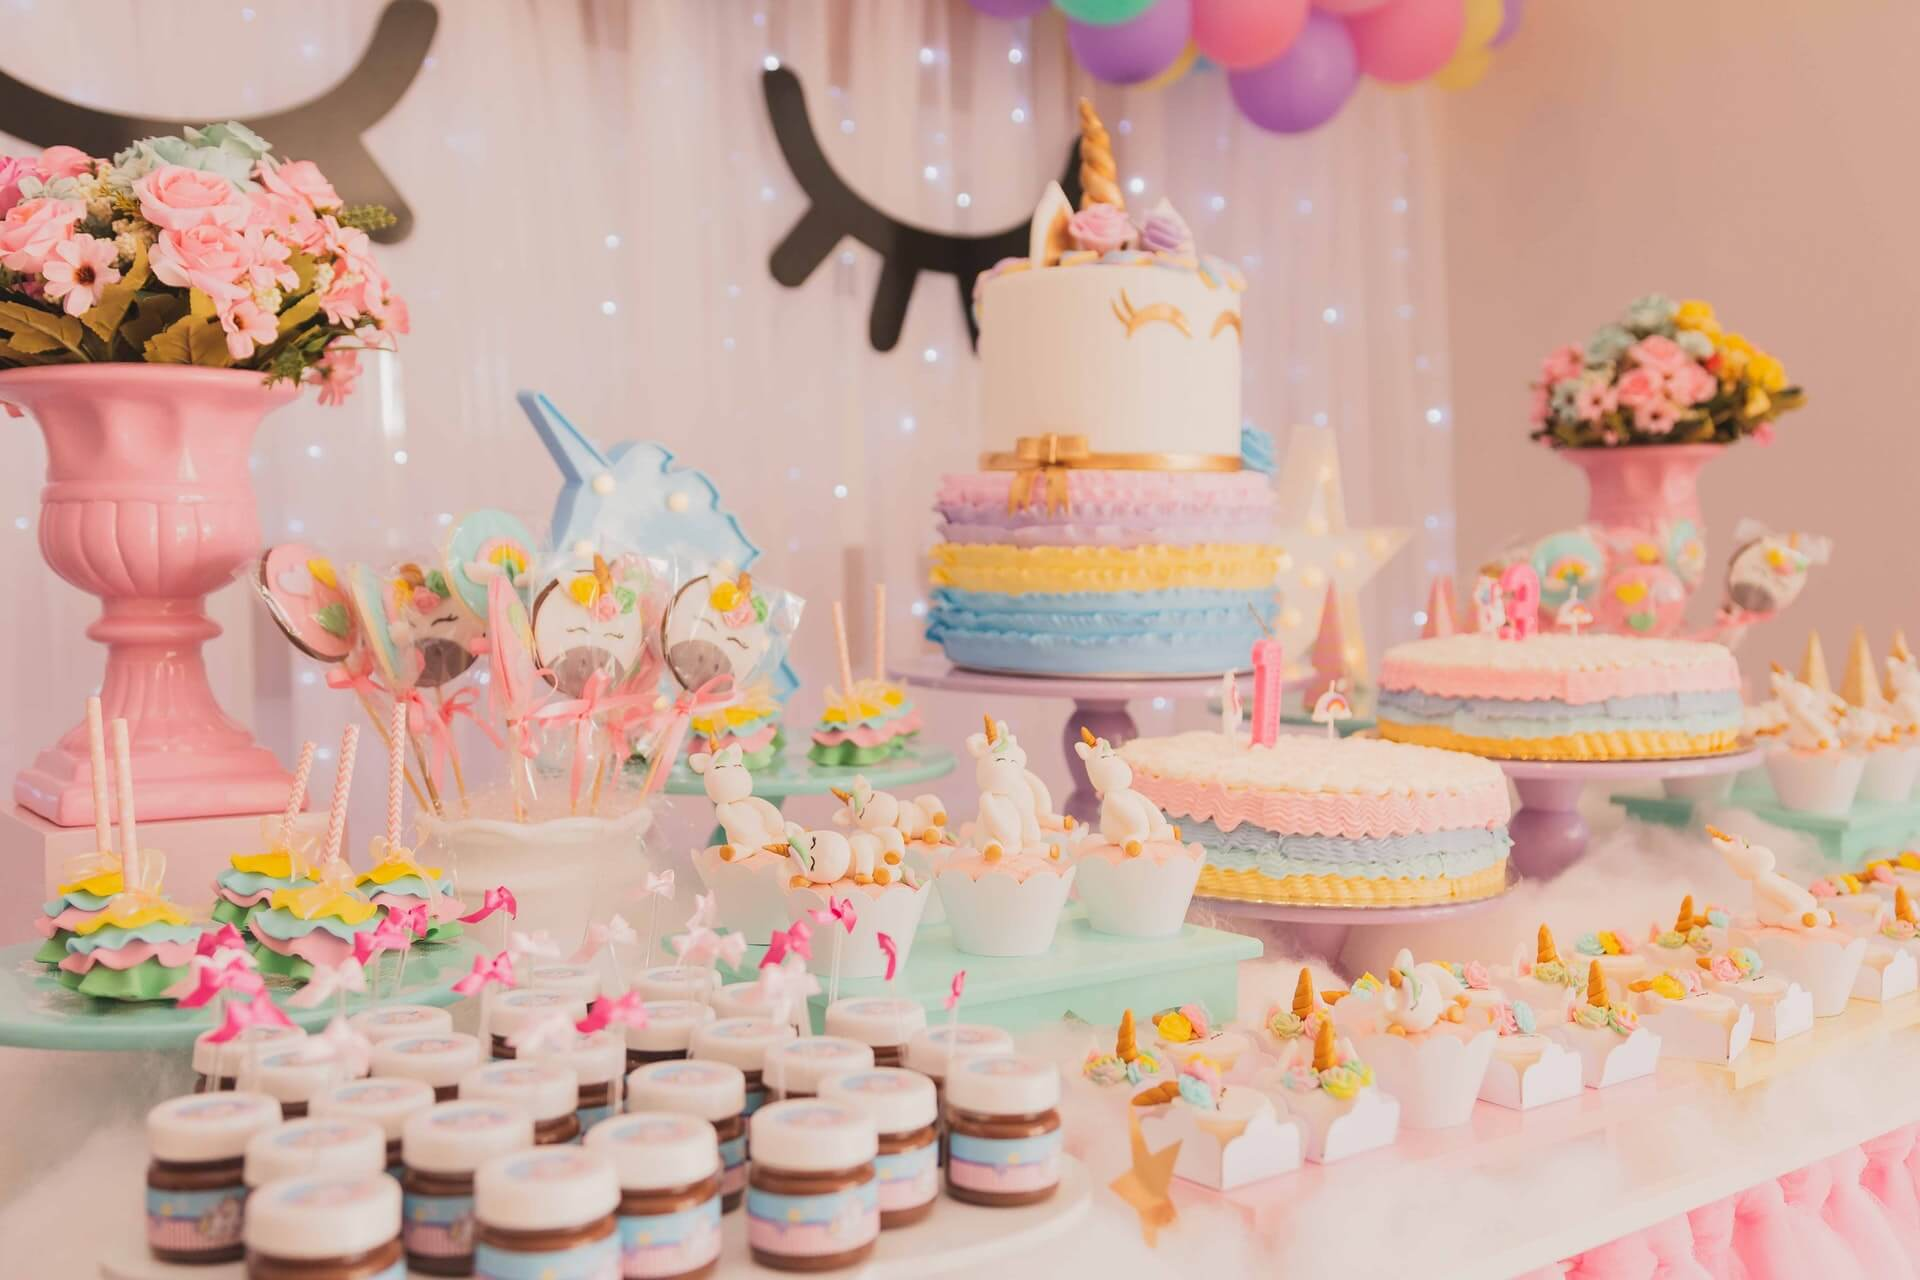 9 Delicious Cake Flavours To Add A Zesty Panache To A Wedding Interior Design Design News And Architecture Trends